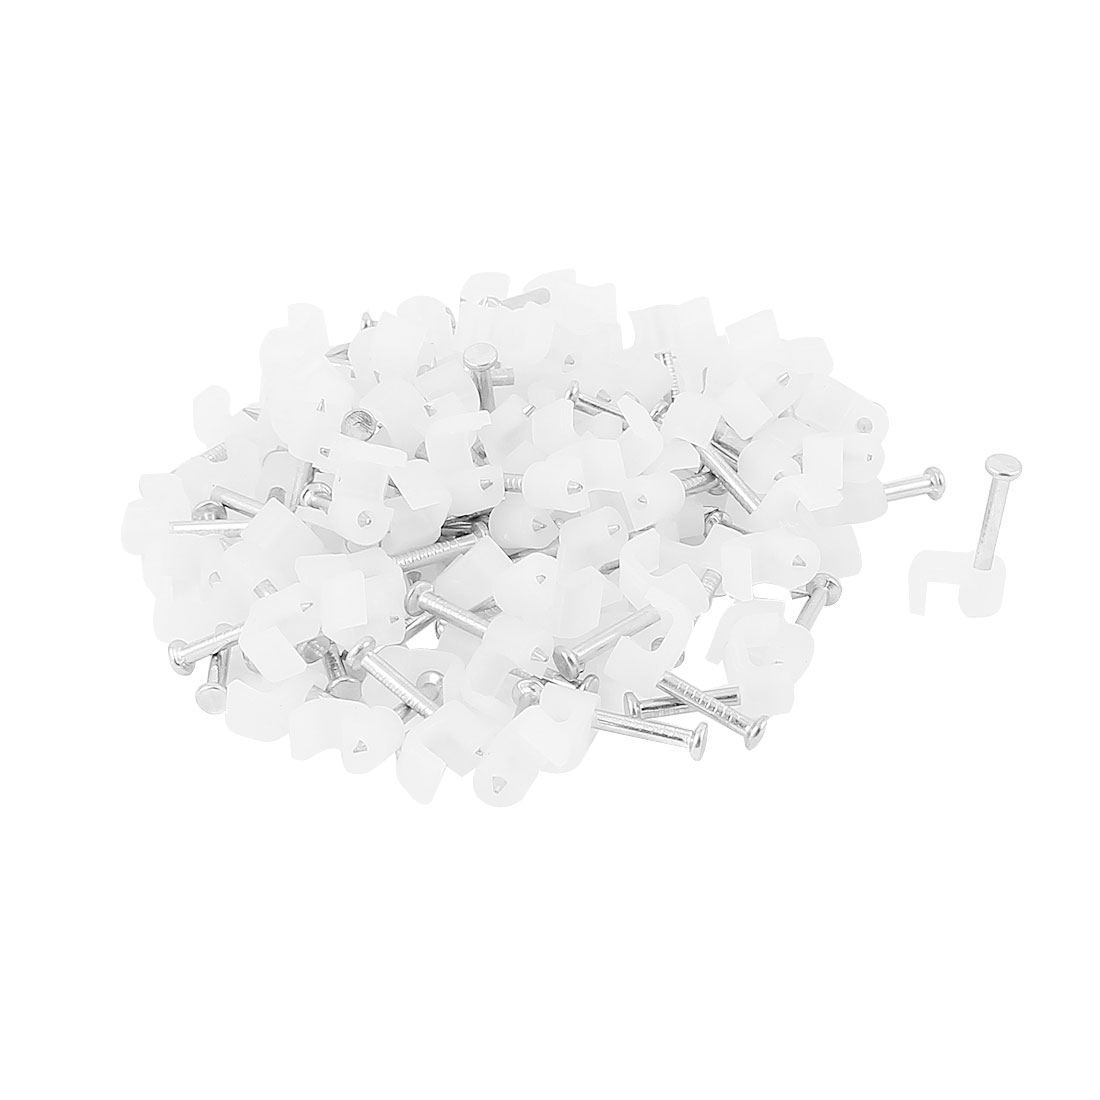 Cable Wire Clips Fastener 4mm Width w Fixing Nails 100Pcs White